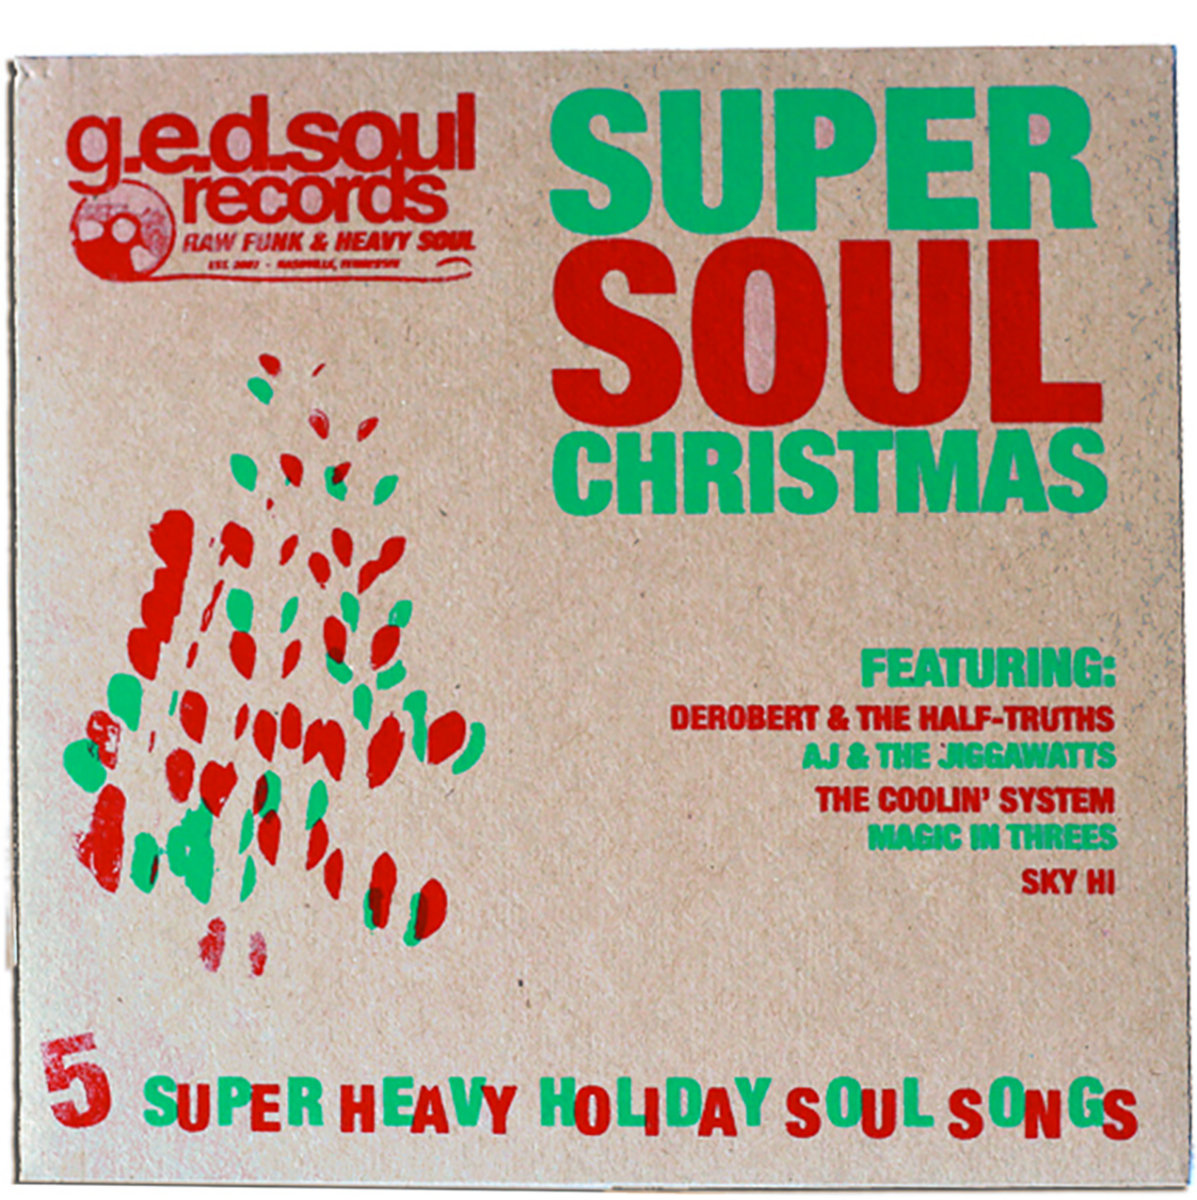 G.E.D. Soul Records Super Soul Christmas | G.E.D. Soul Records